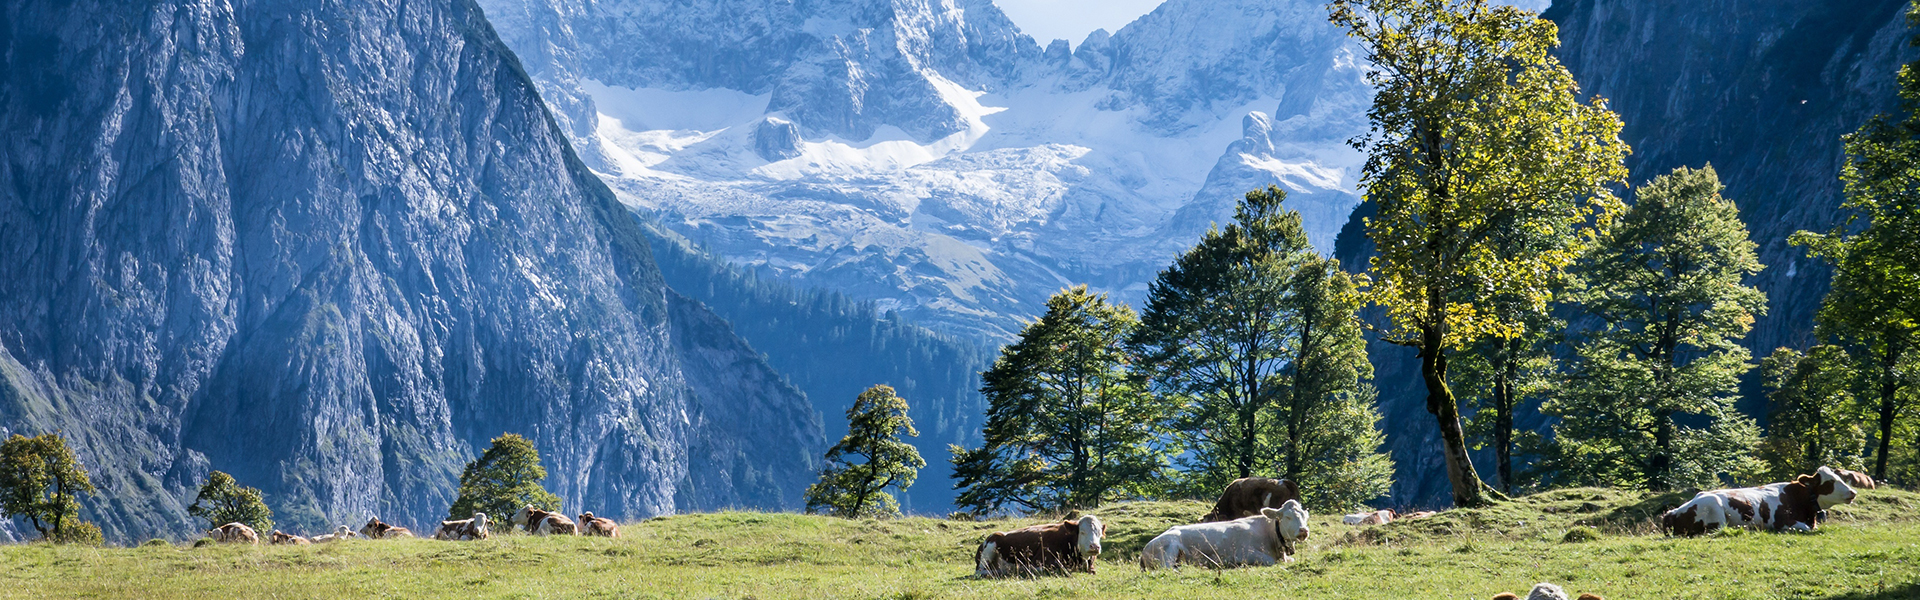 Bavarian-Alps-Cows-Nature